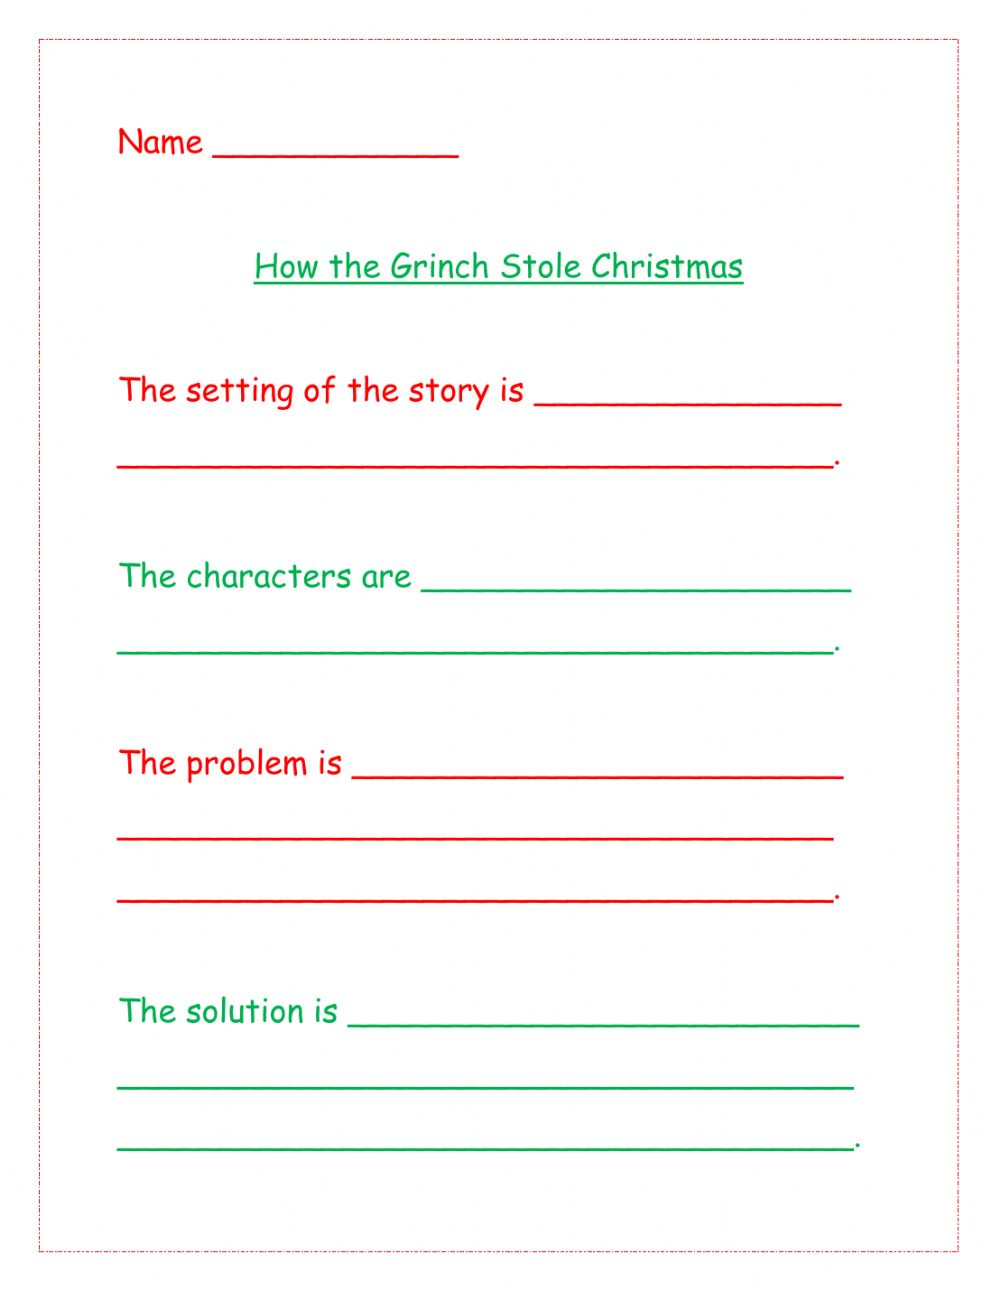 How The Grinch Stole Christmas Interactive Worksheet